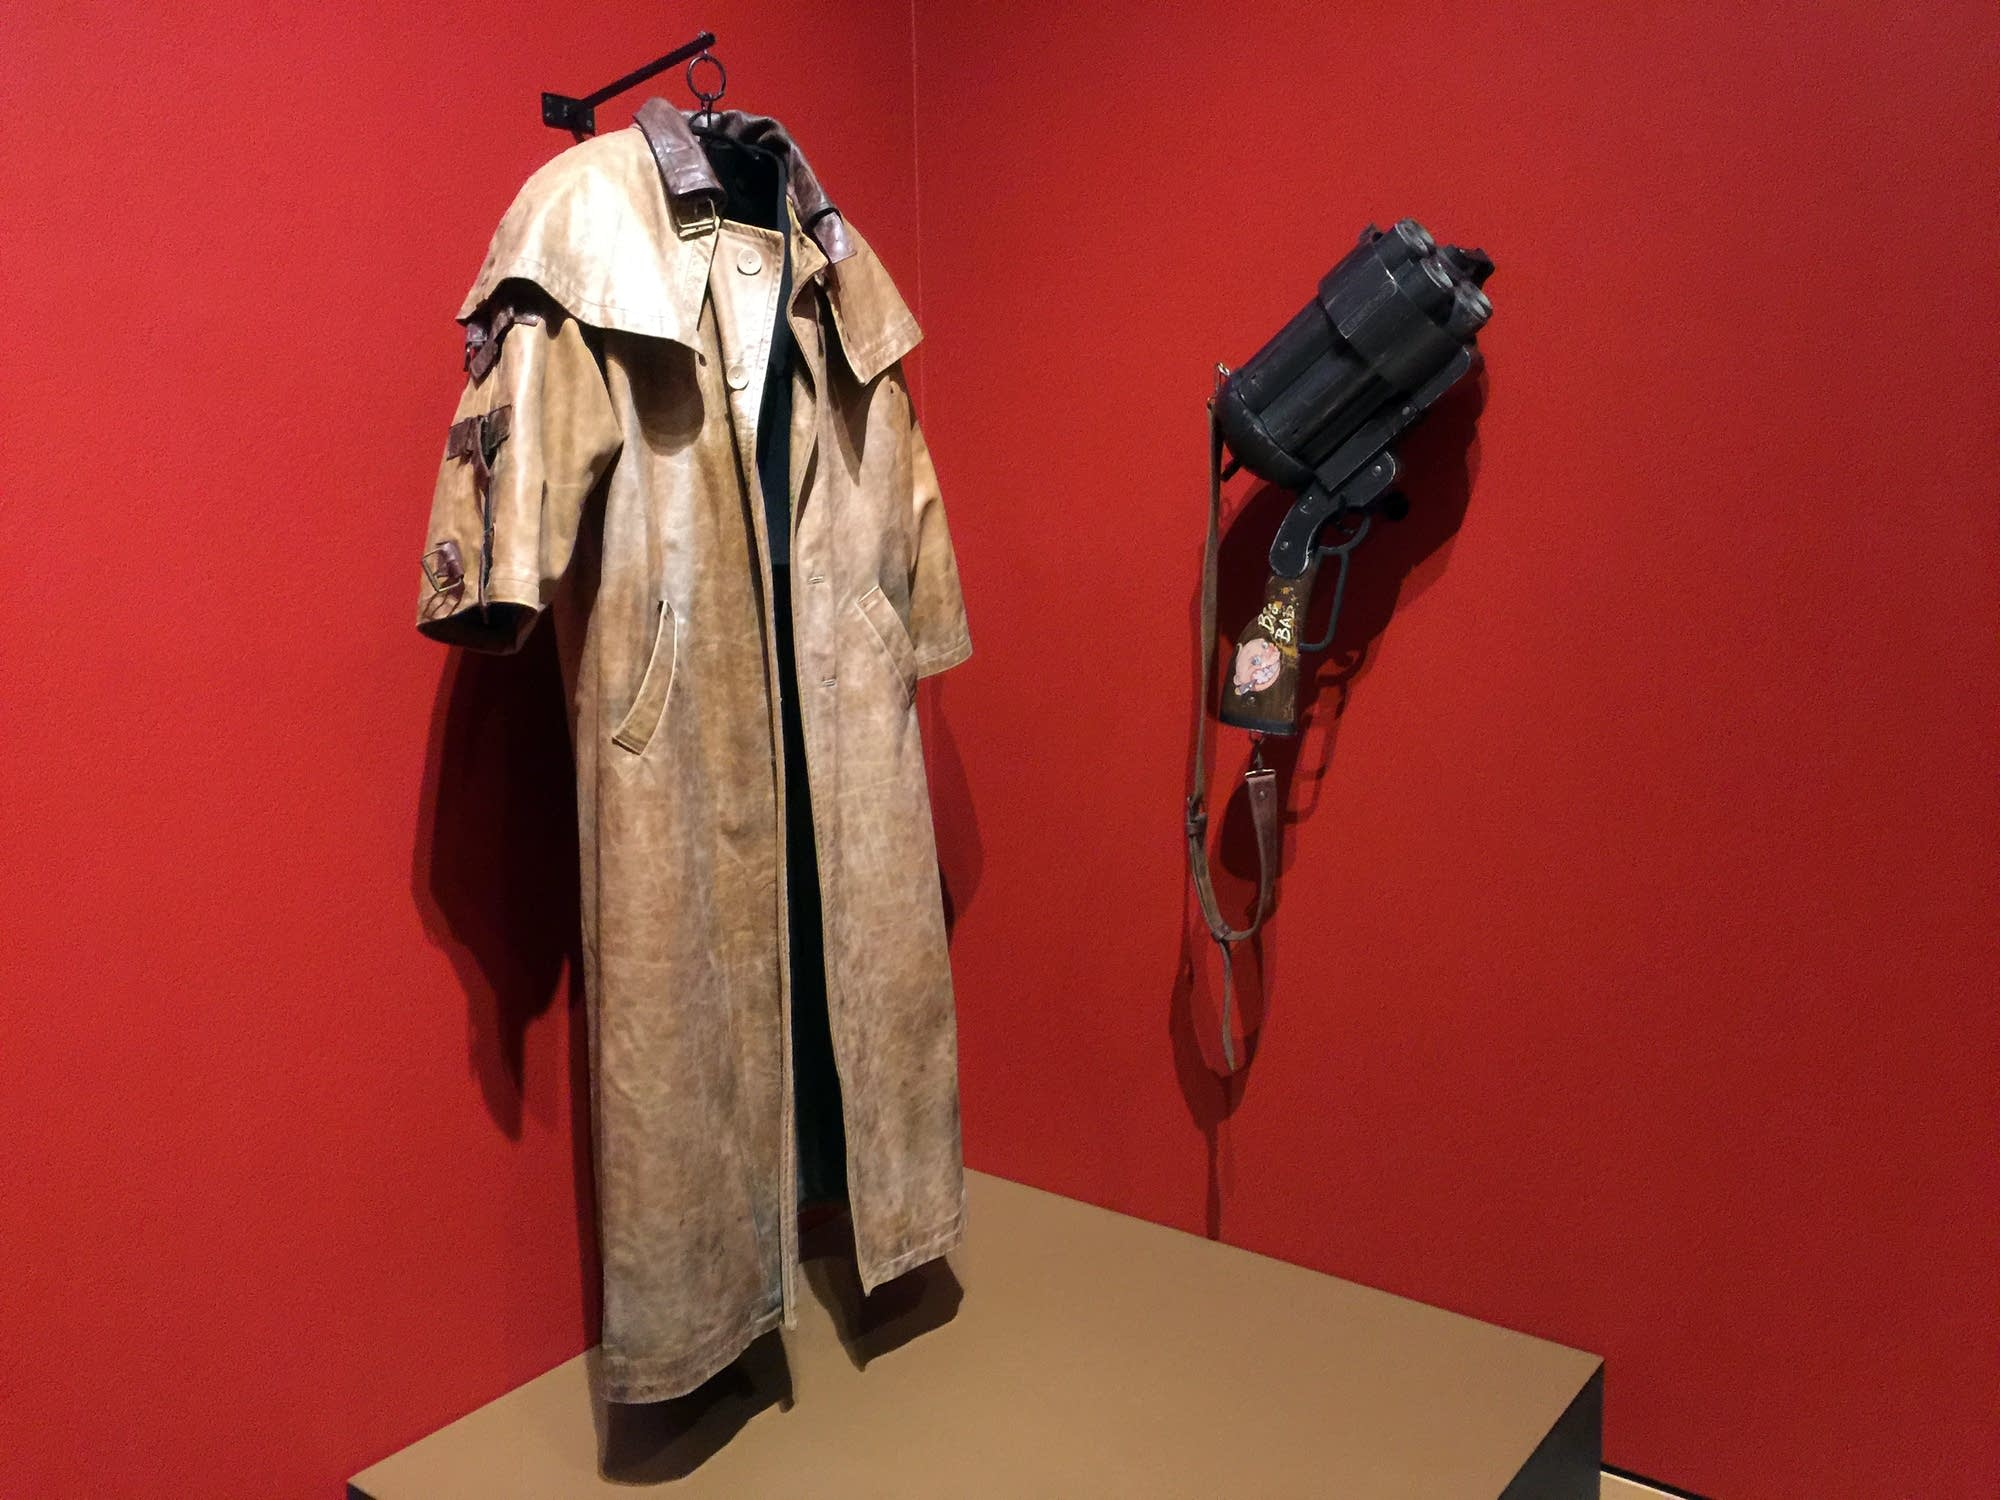 Film artifacts include Hell Boy's leather coat and 'Big Baby' gun.